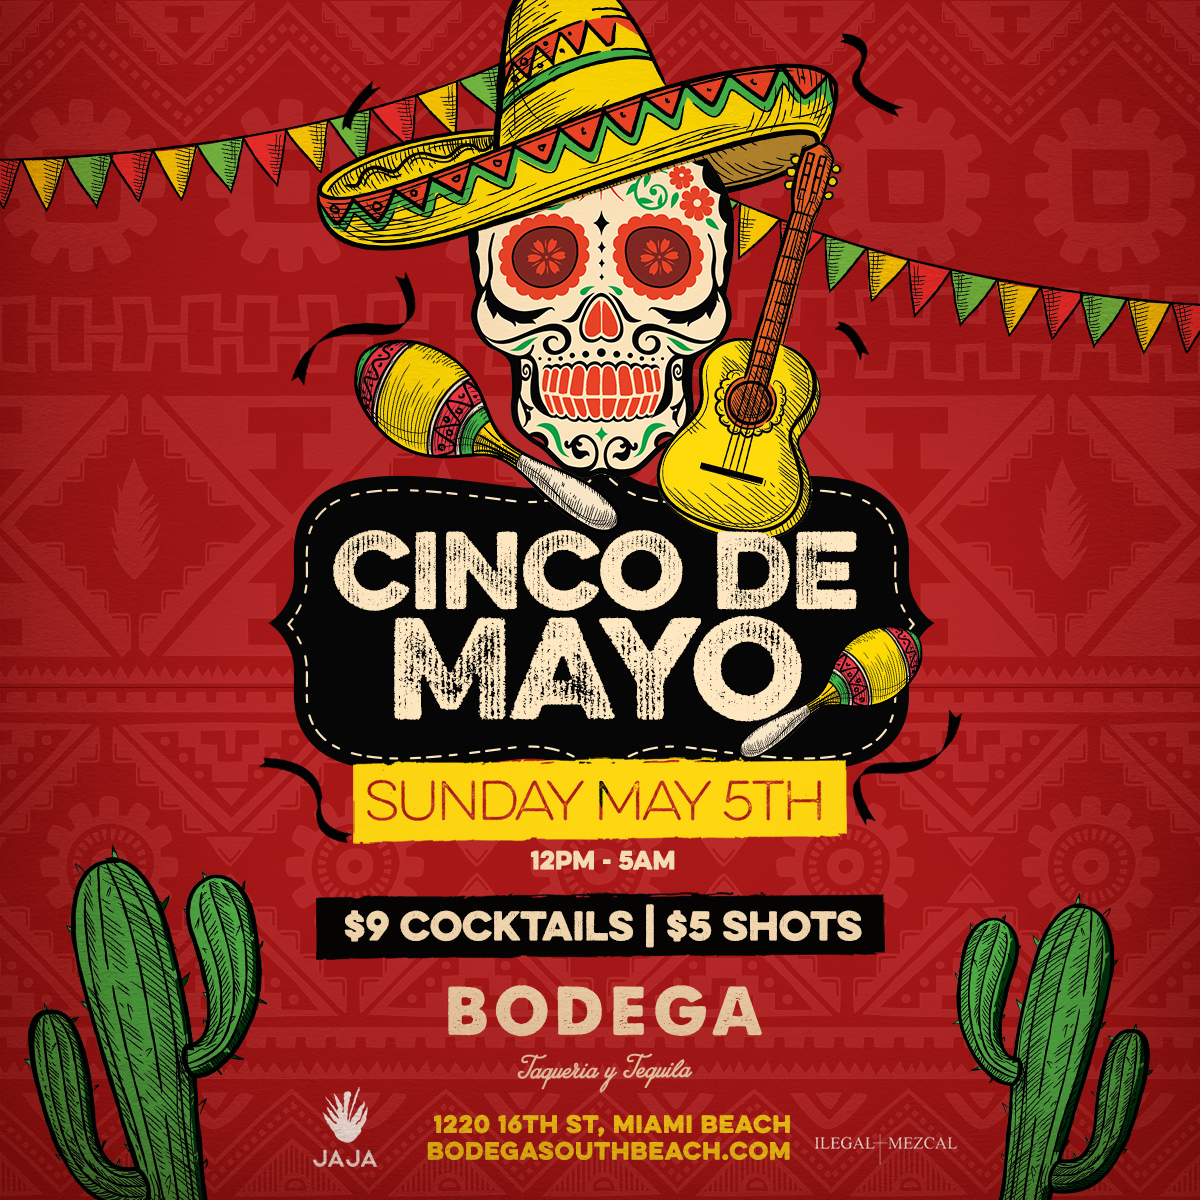 cinco de mayo, party, bodega south beach